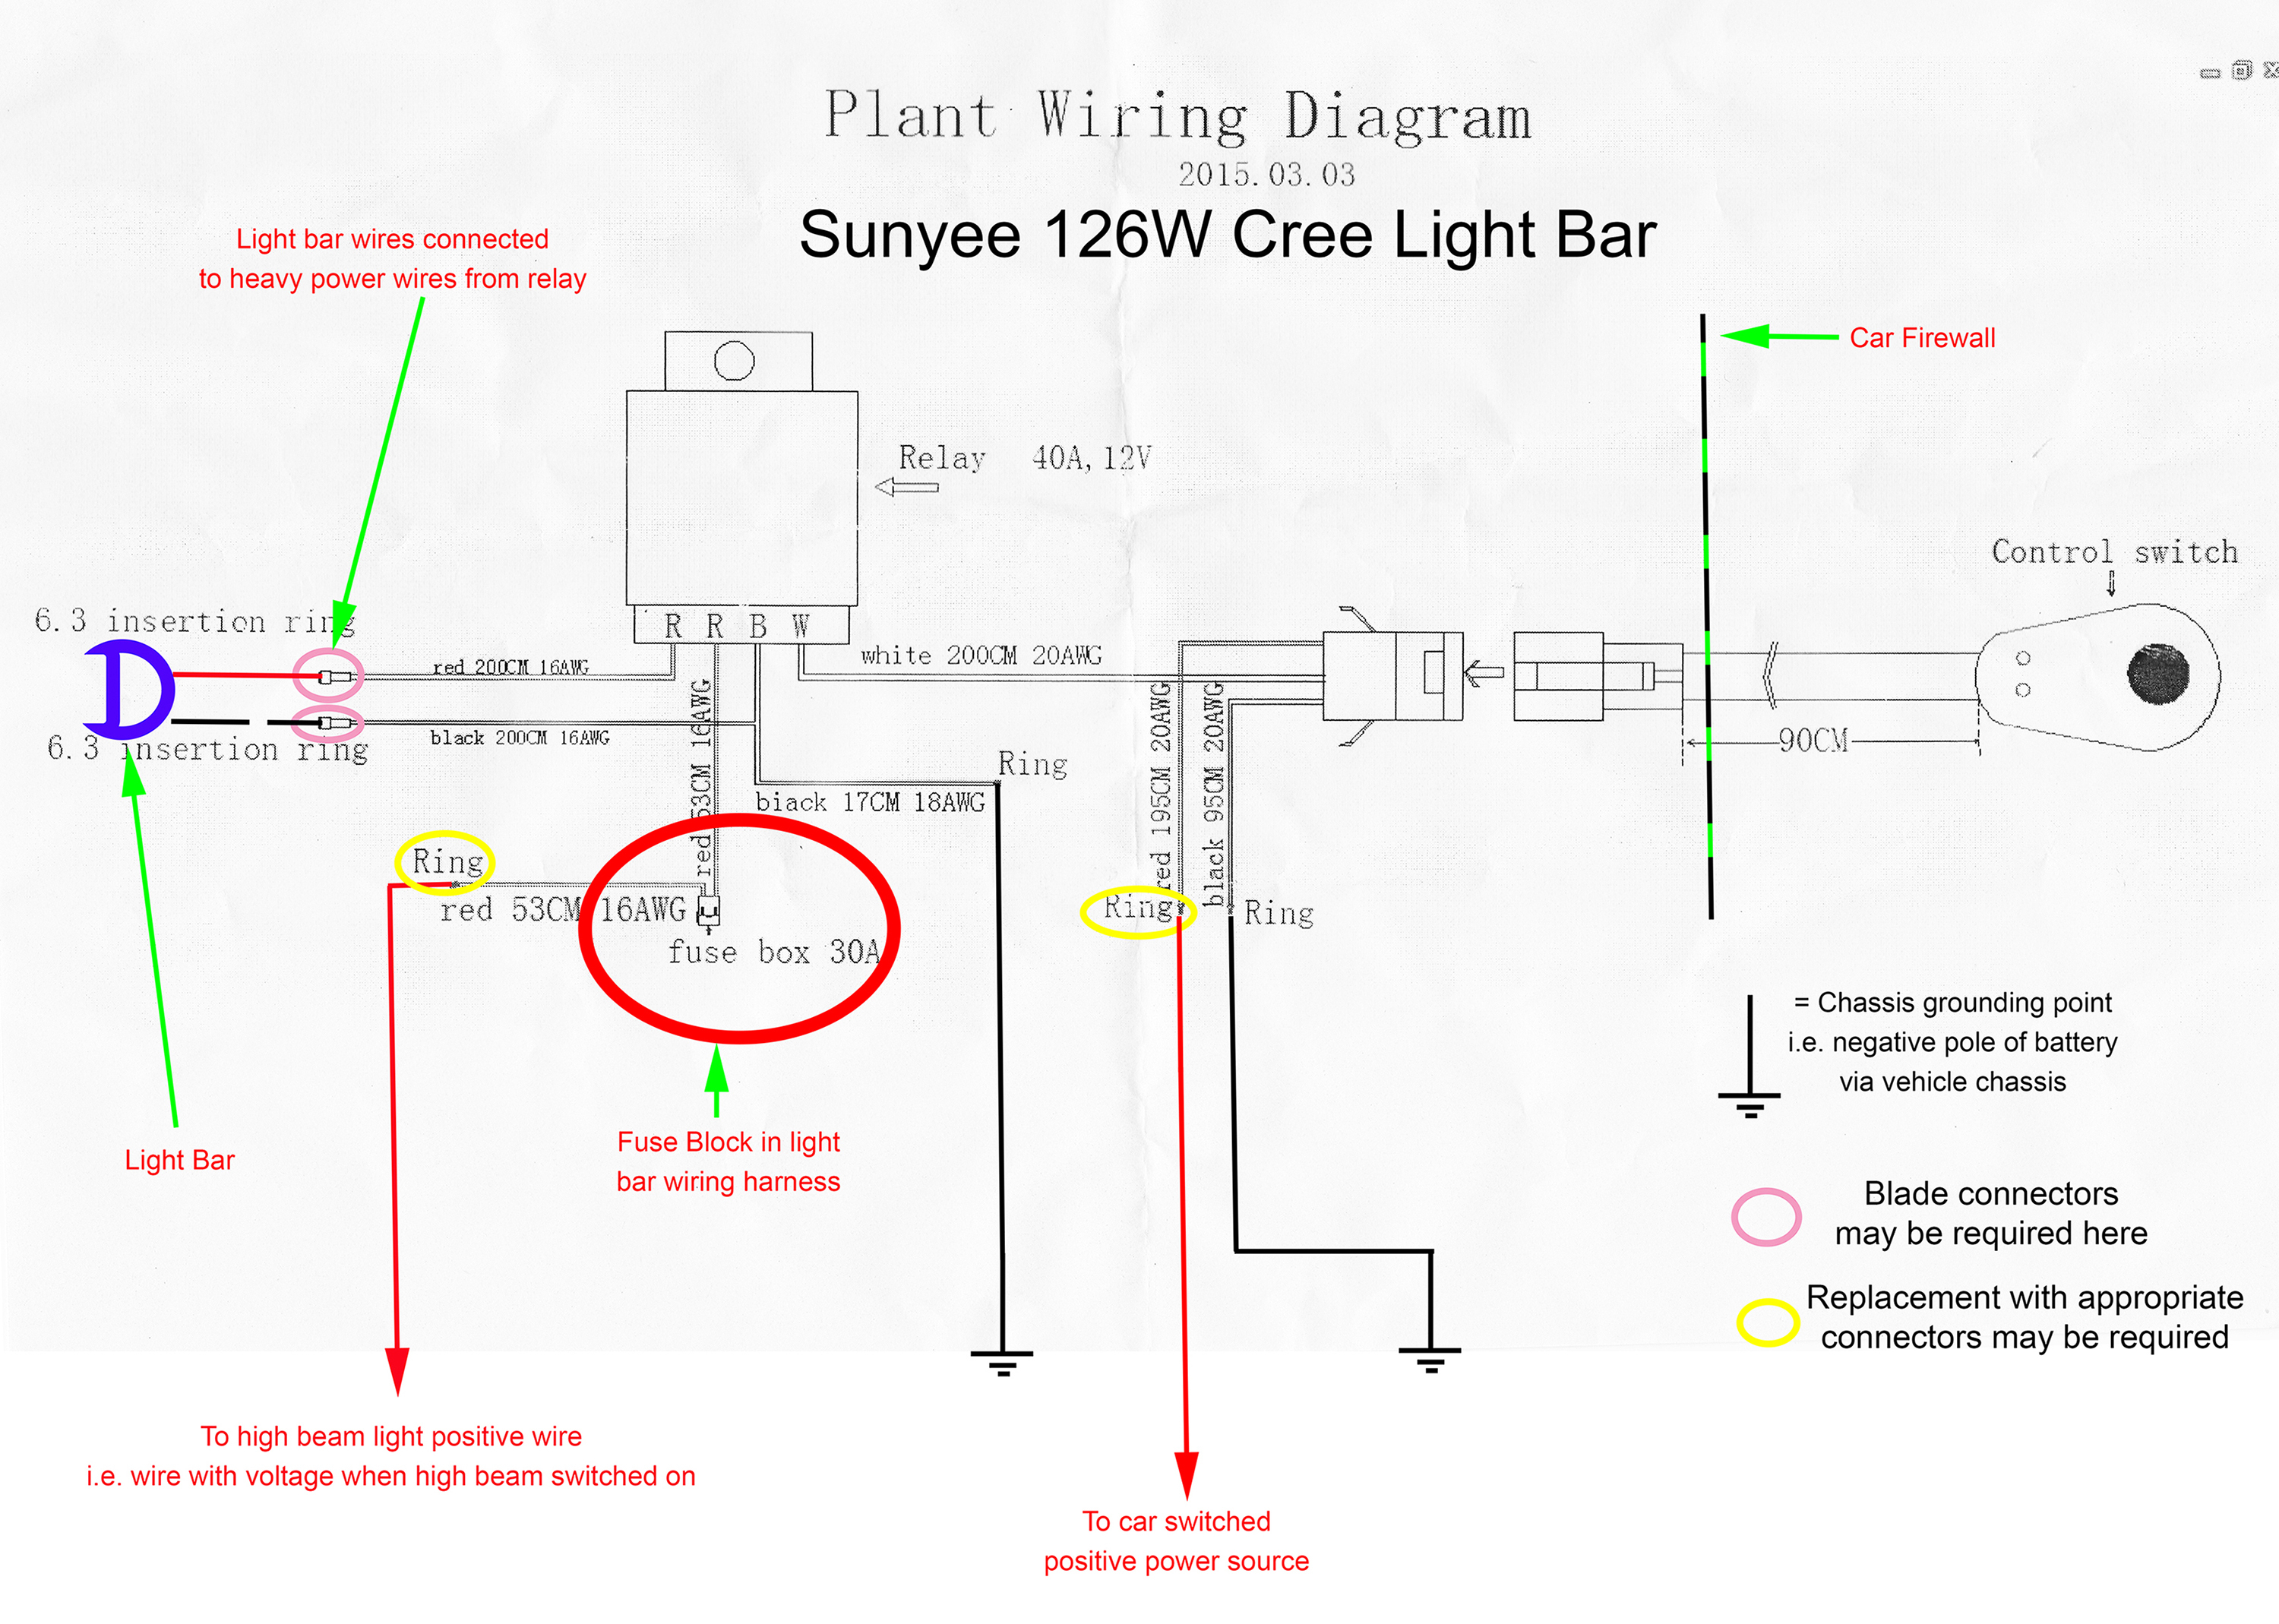 Trailer Light Wiring Diagram Australia | Wiring Diagram - Trailer Light Wiring Diagram Australia